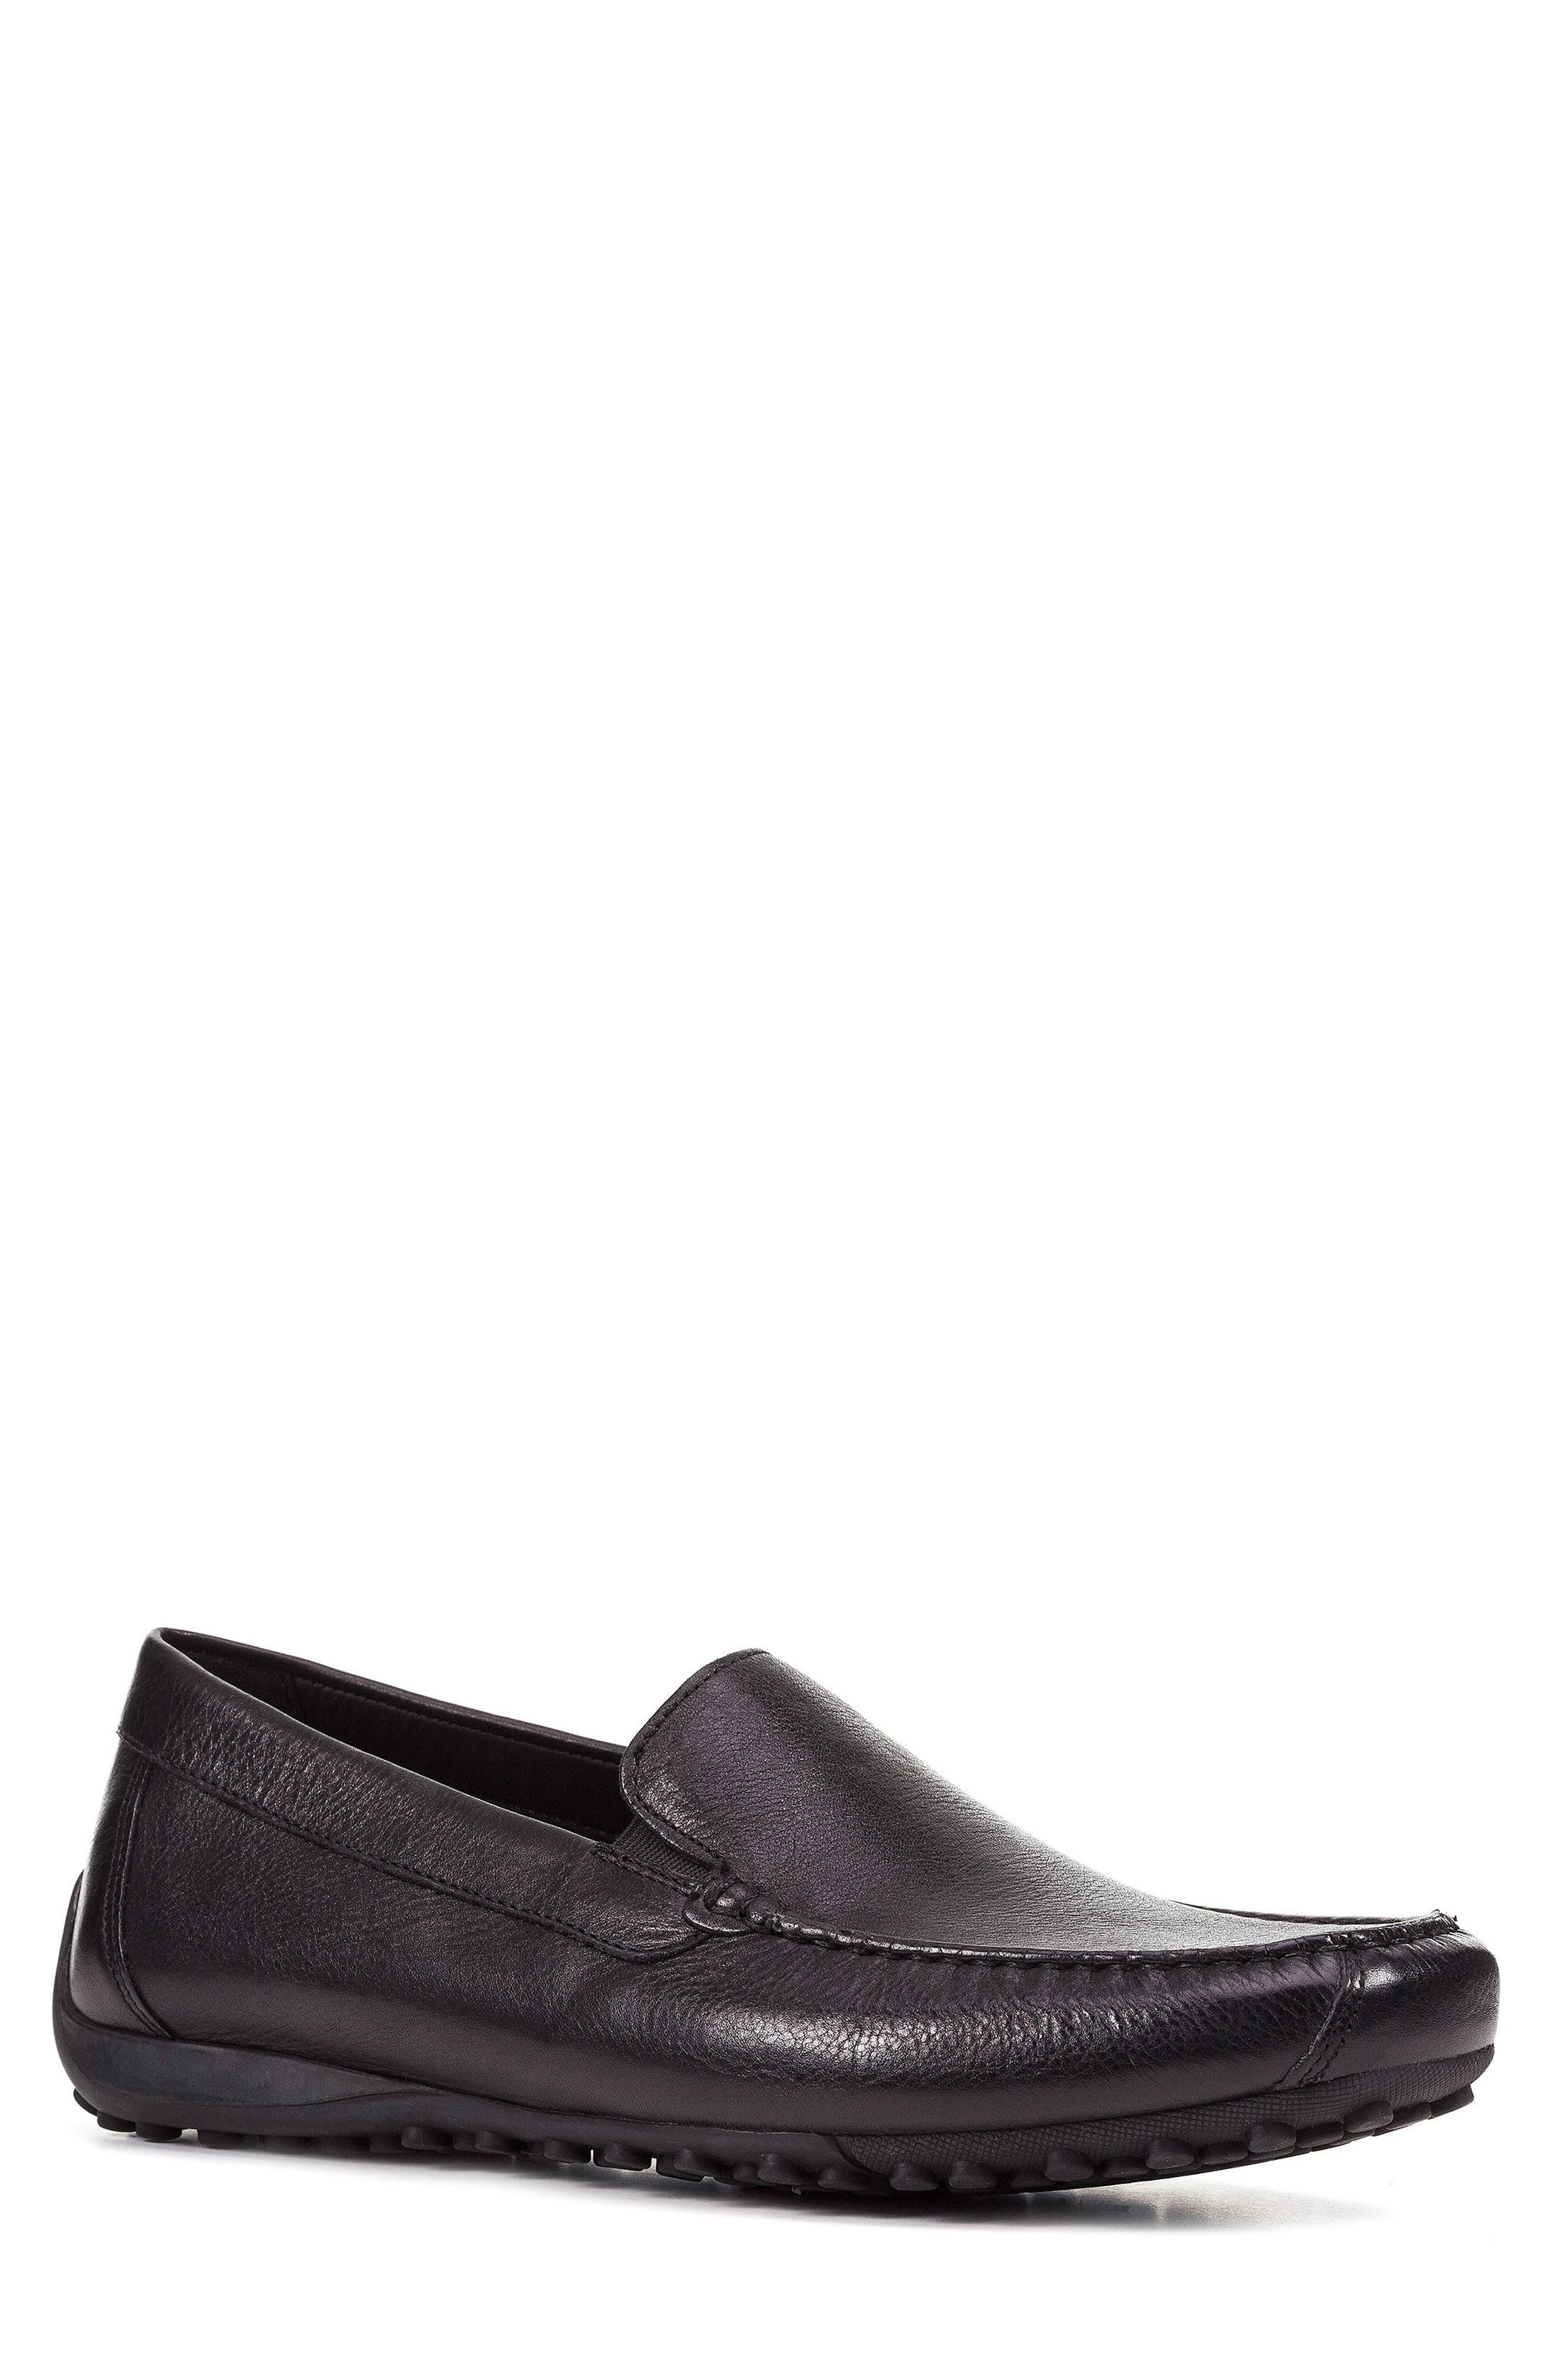 Snake 2Fit Driving Shoe,                         Main,                         color, BLACK LEATHER